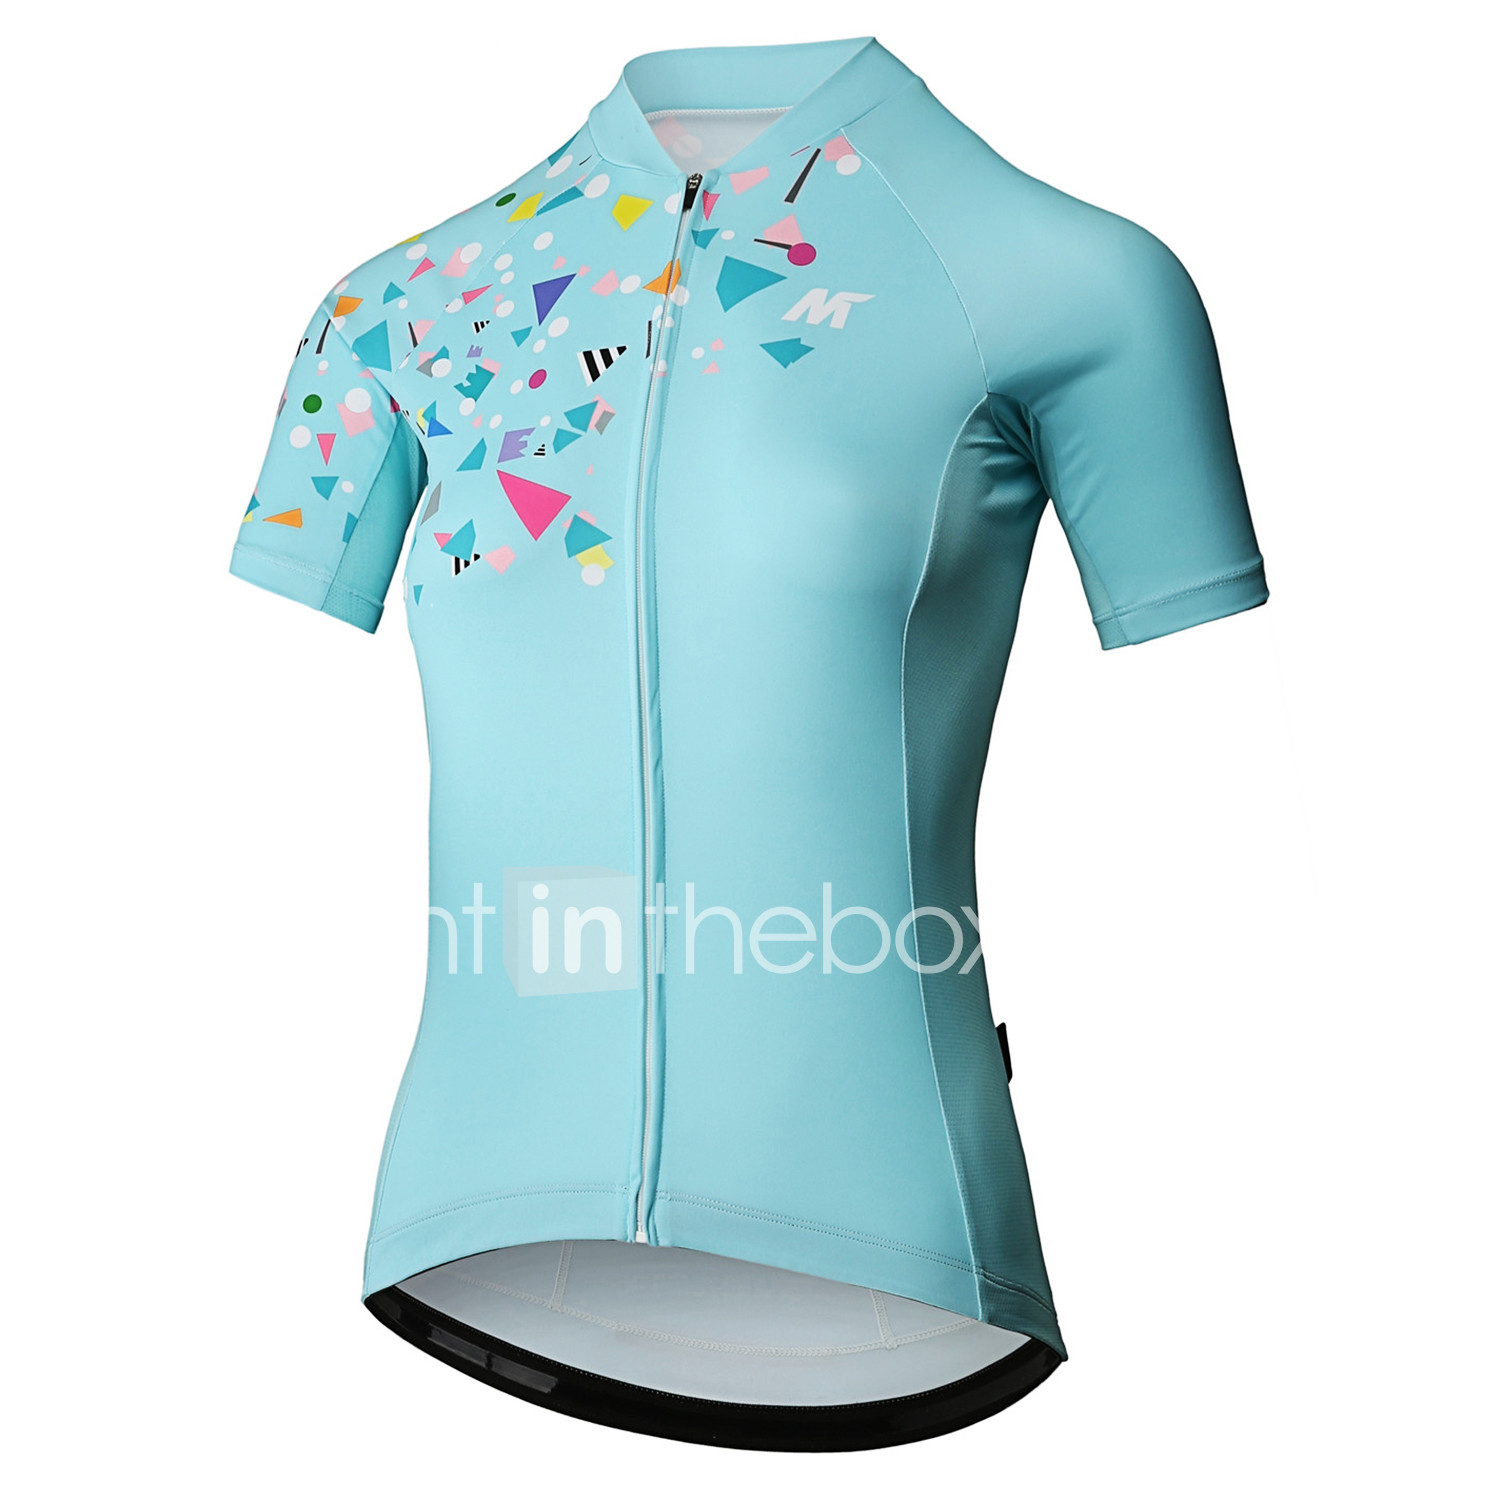 Mysenlan Women s Short Sleeve Cycling Jersey - Mint Green Bike Jersey  Sports Polyester Mountain Bike MTB 1ab77aa3a